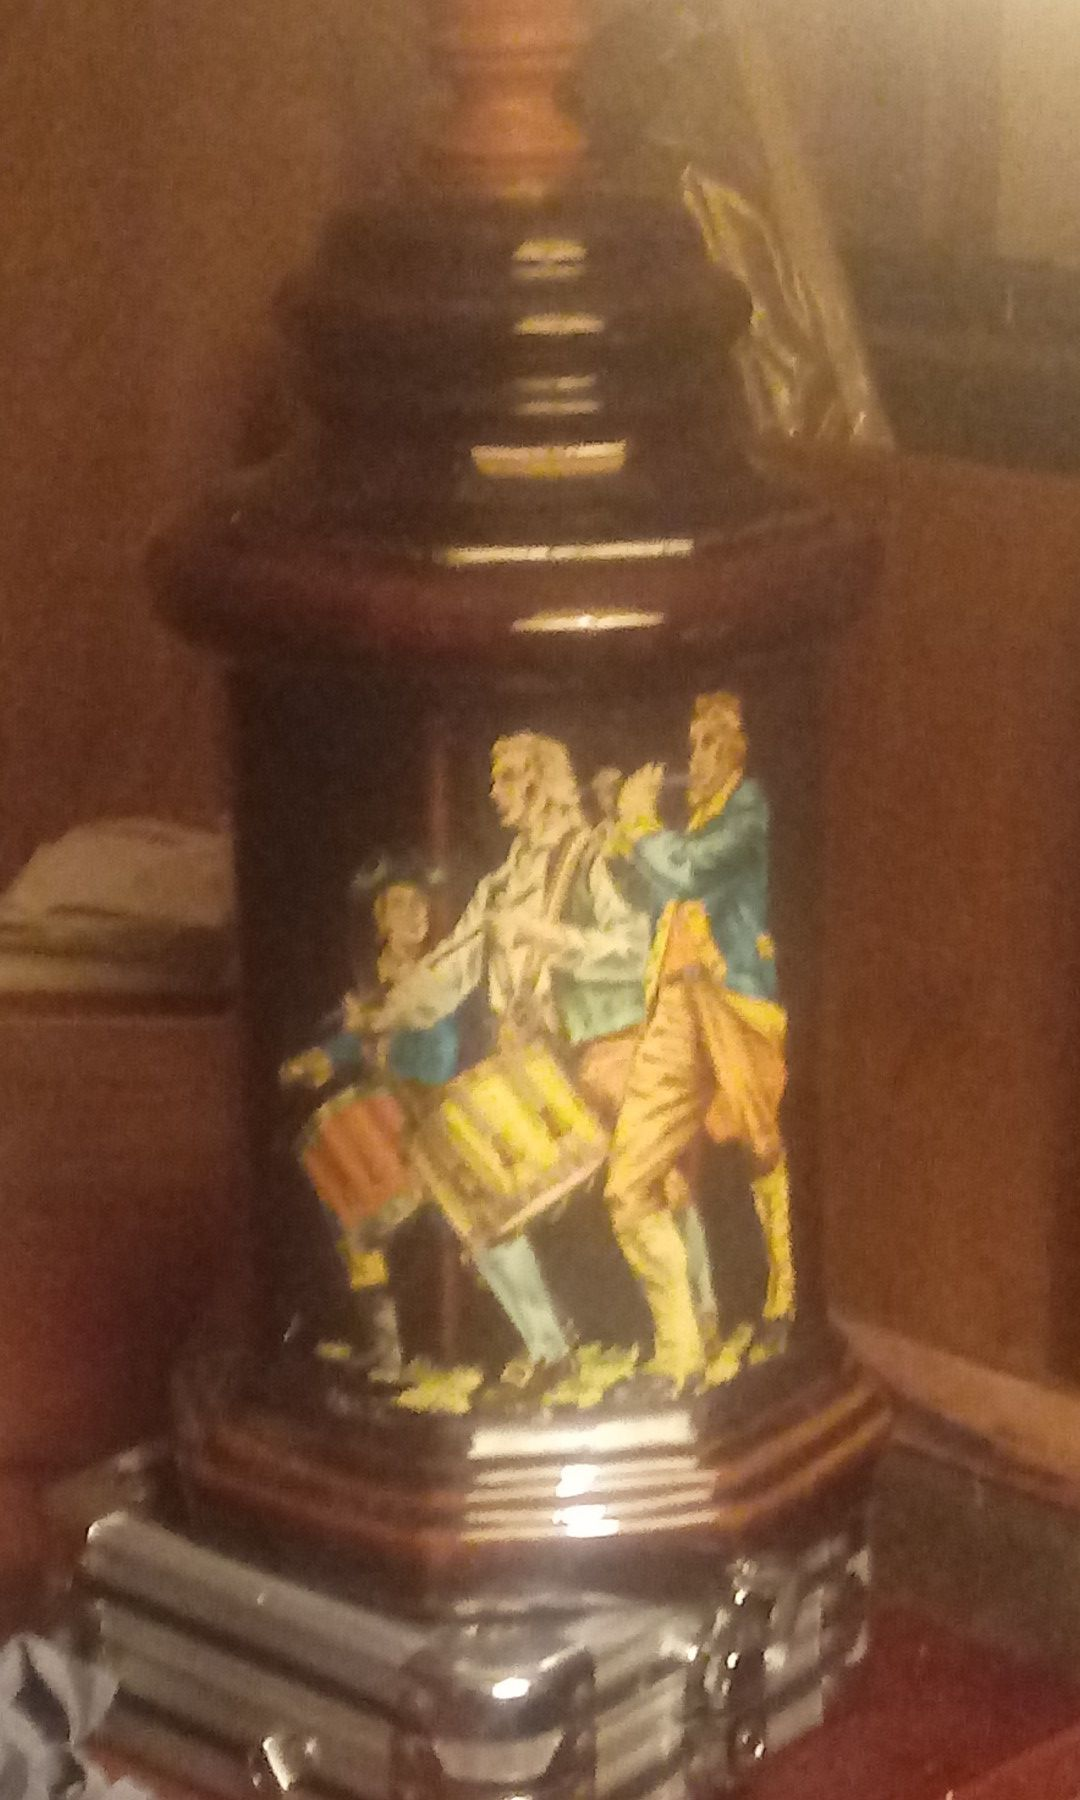 Civil war lamp made hand made and painted..cool....history finest..